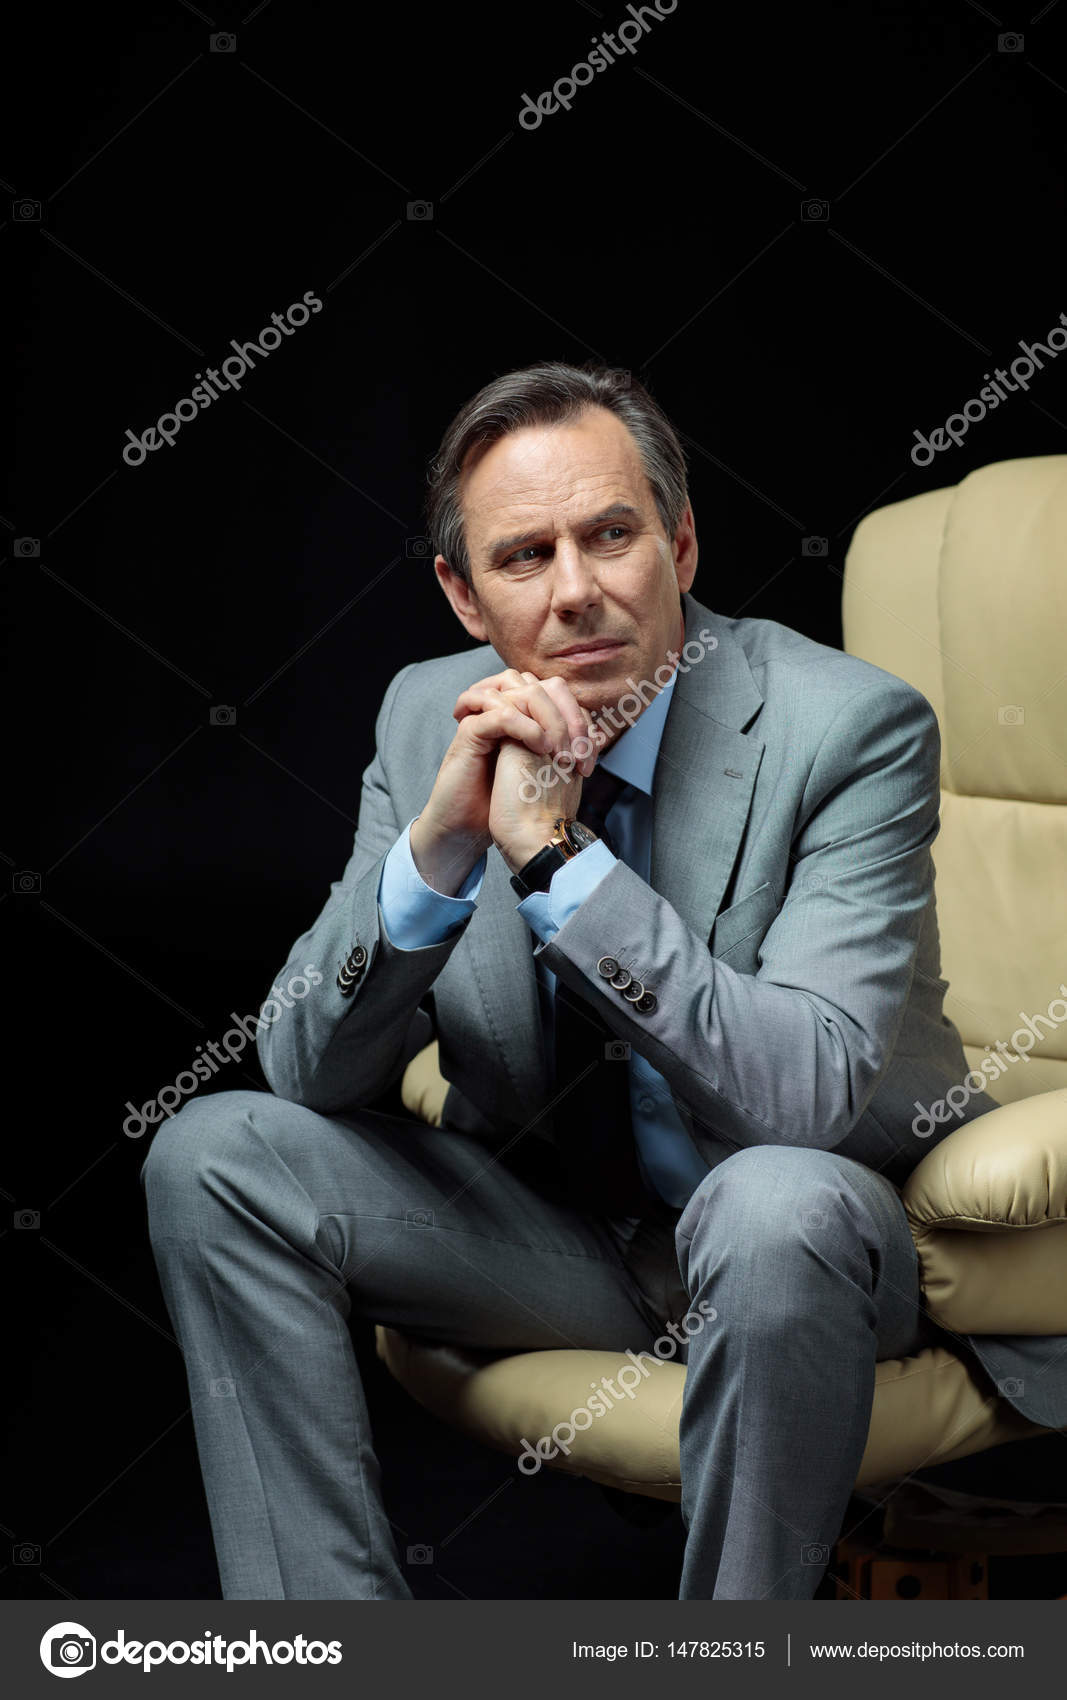 Empres rio sentado na poltrona stock photo yurasokolov for Sitting in armchair